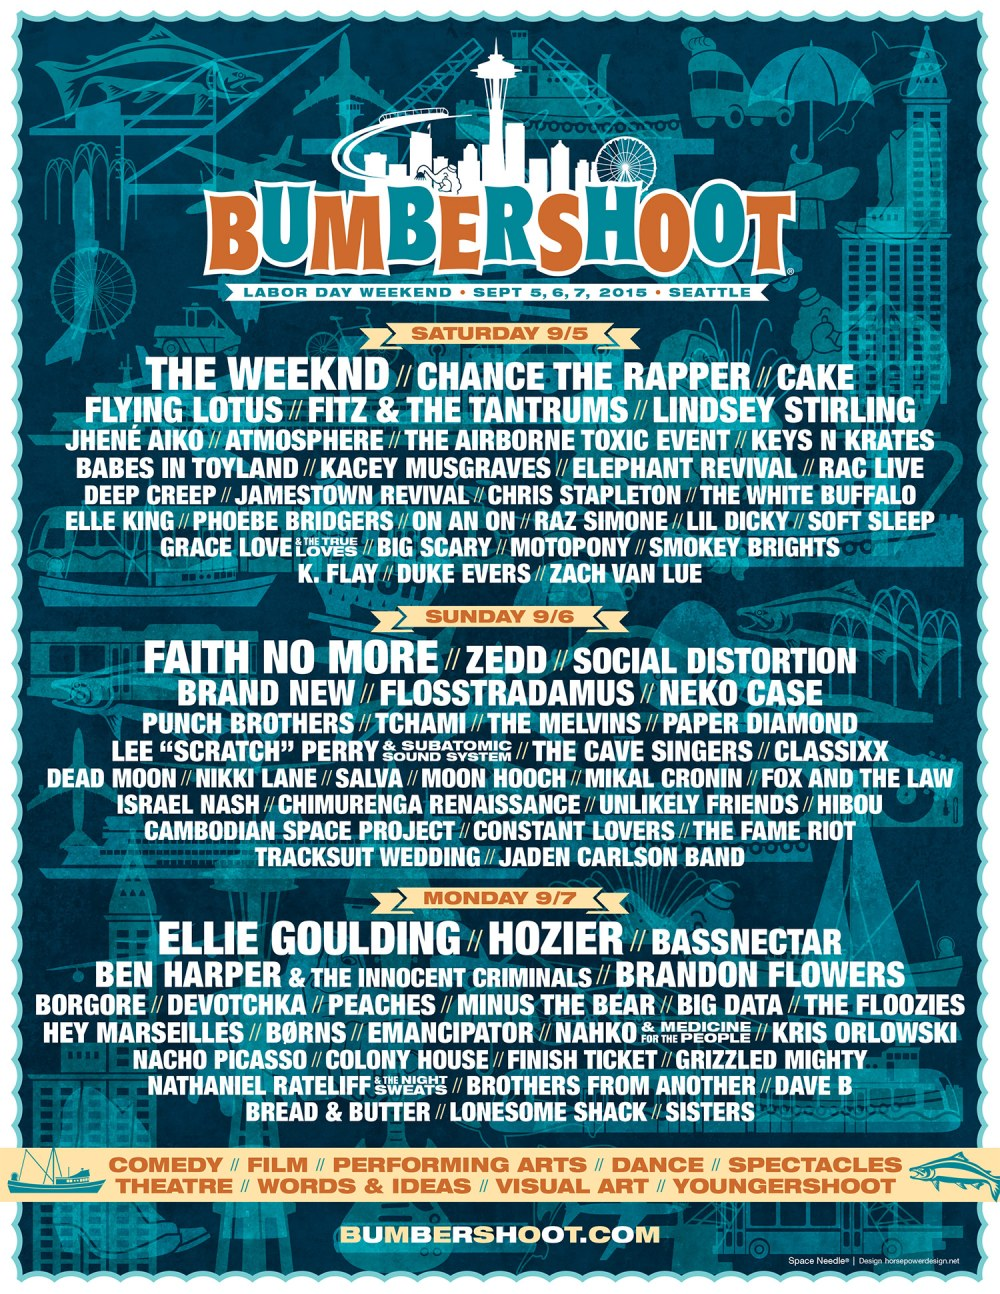 Bumbershoot 2015 lineup announcement poster